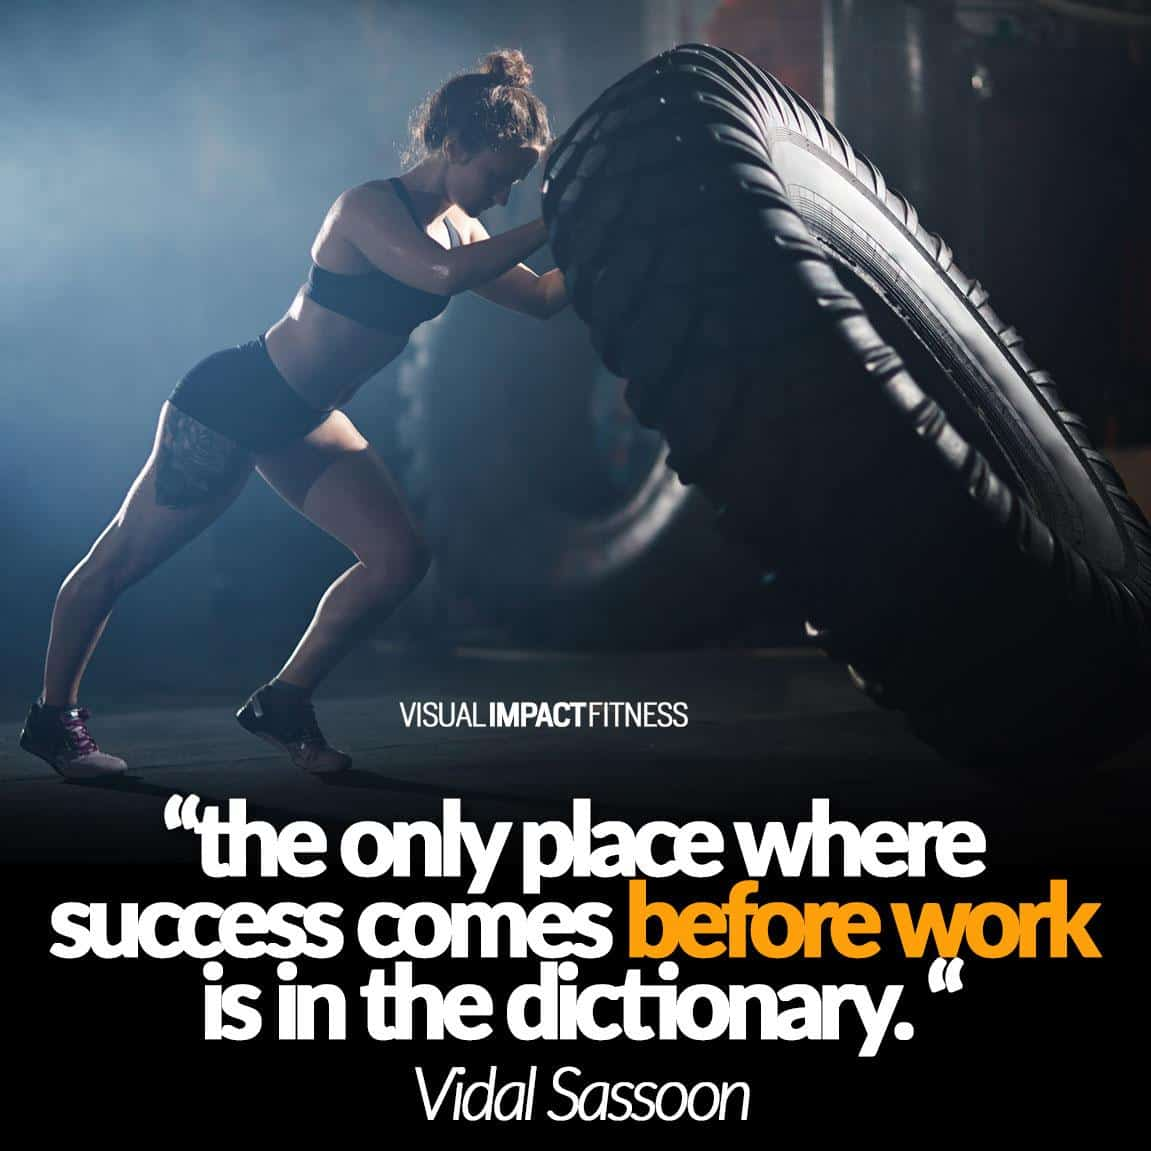 The only place that success comes before work is in the dictionary.